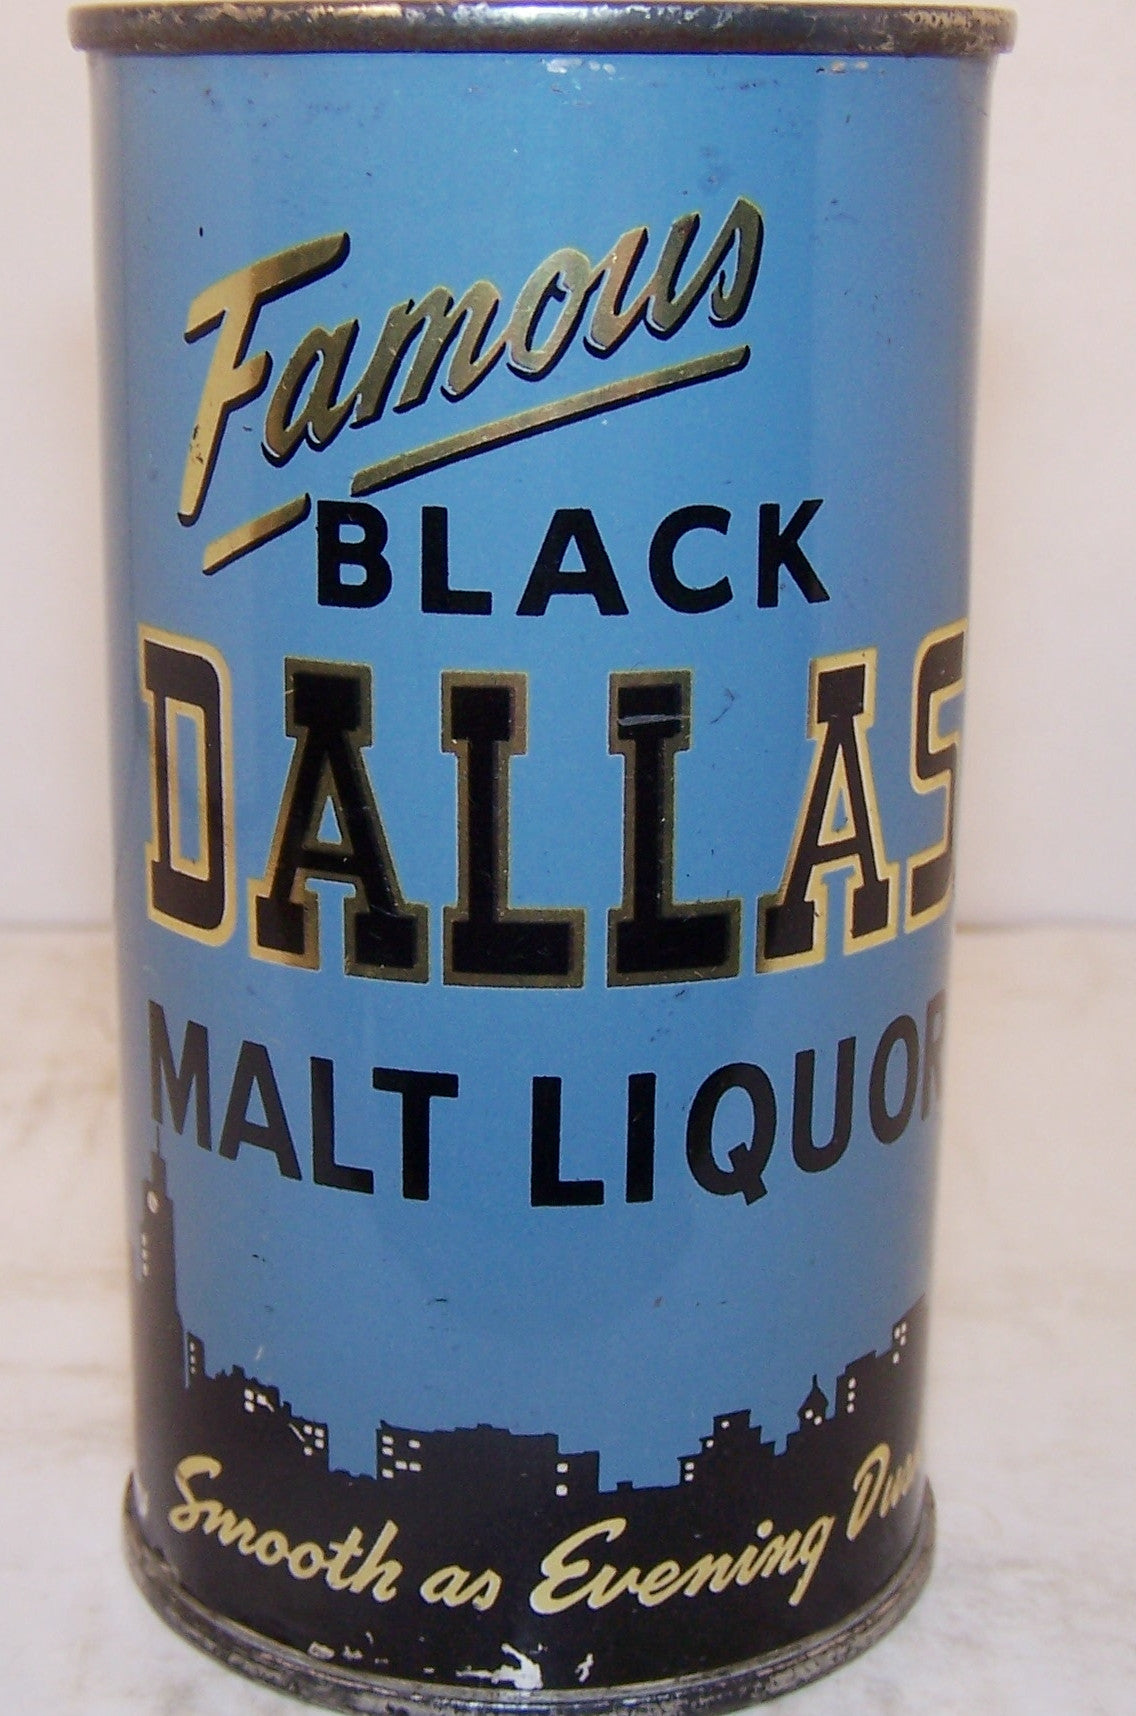 Black Dallas Malt Liquor, USBC 37-21, Grade 1/1+ Sold 5/3/15